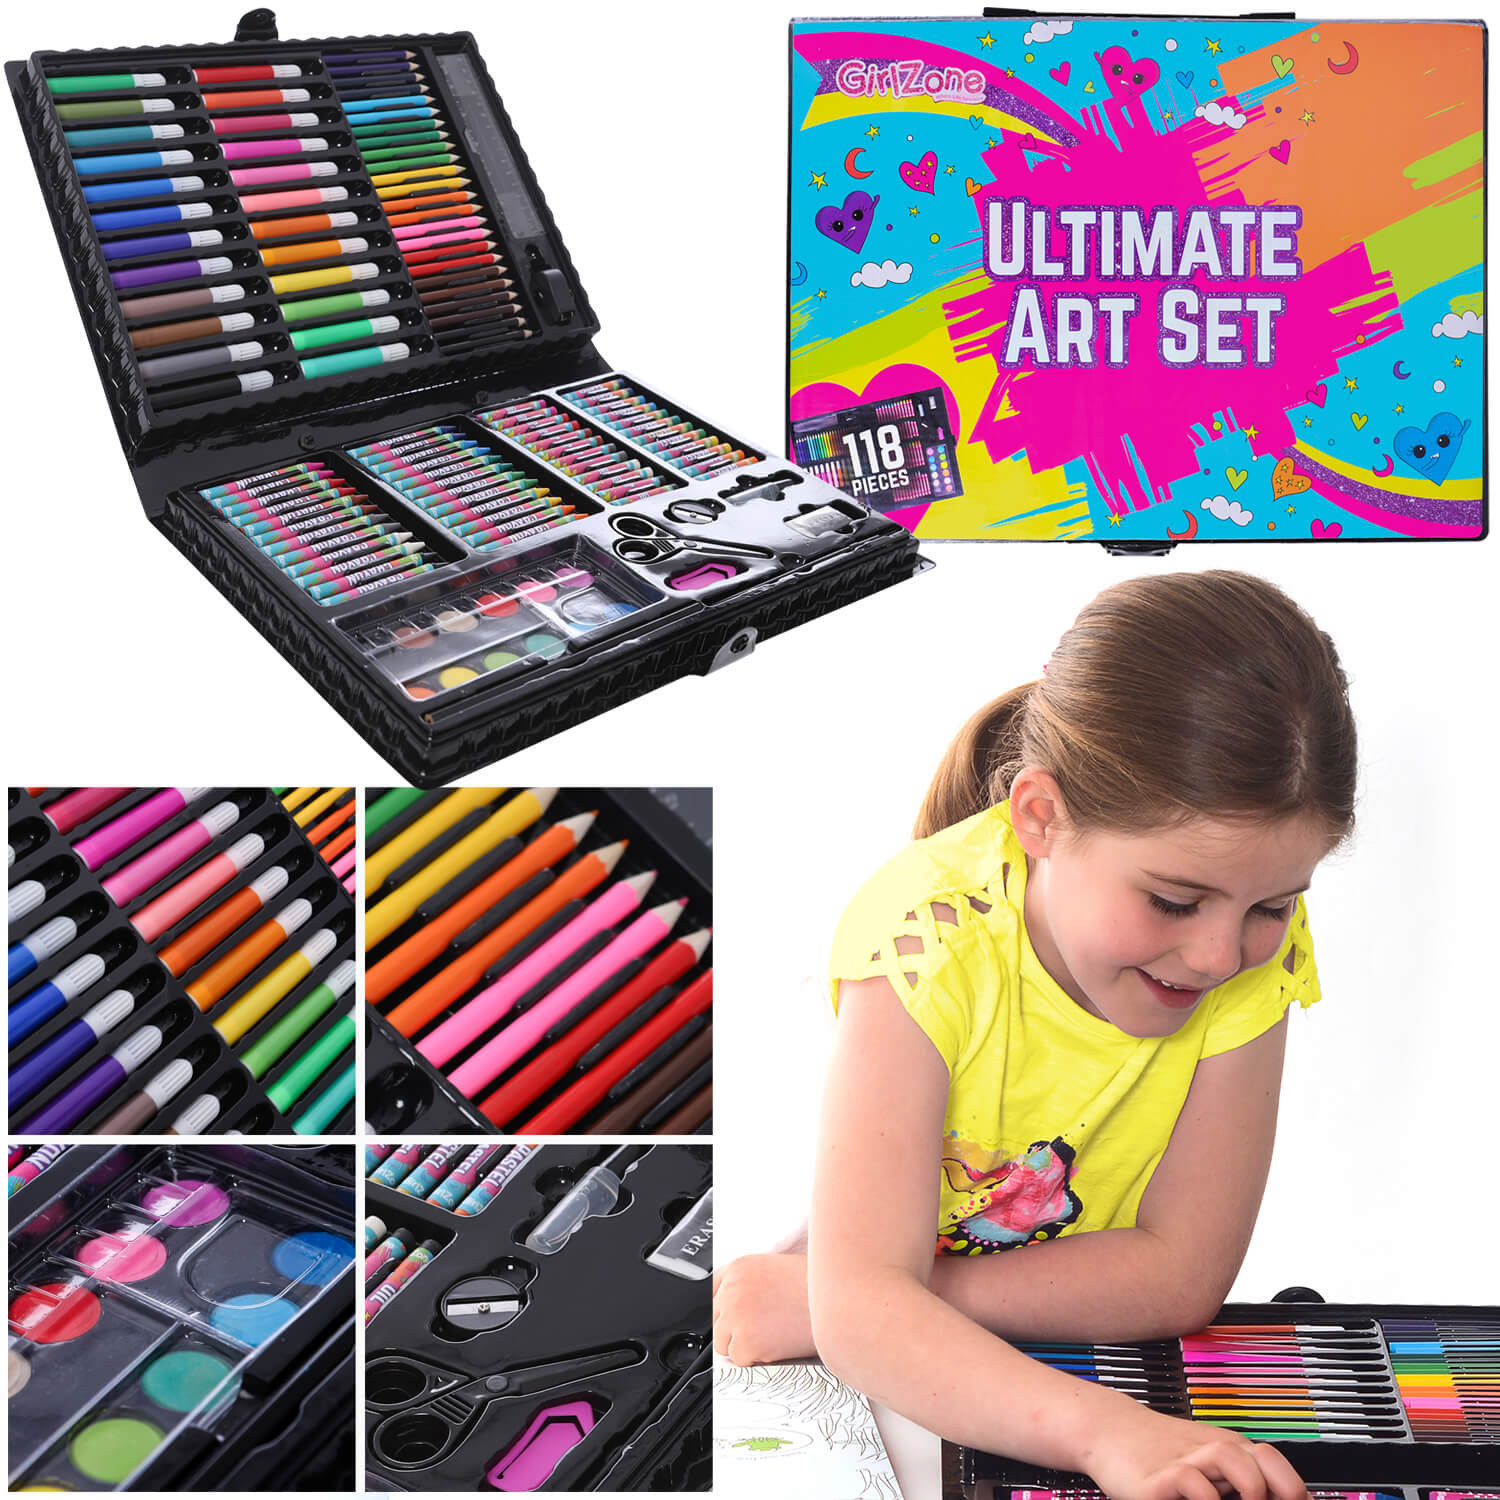 Arts And Crafts Sets For Kids  Ultimate Girls Art Set GirlZone UK